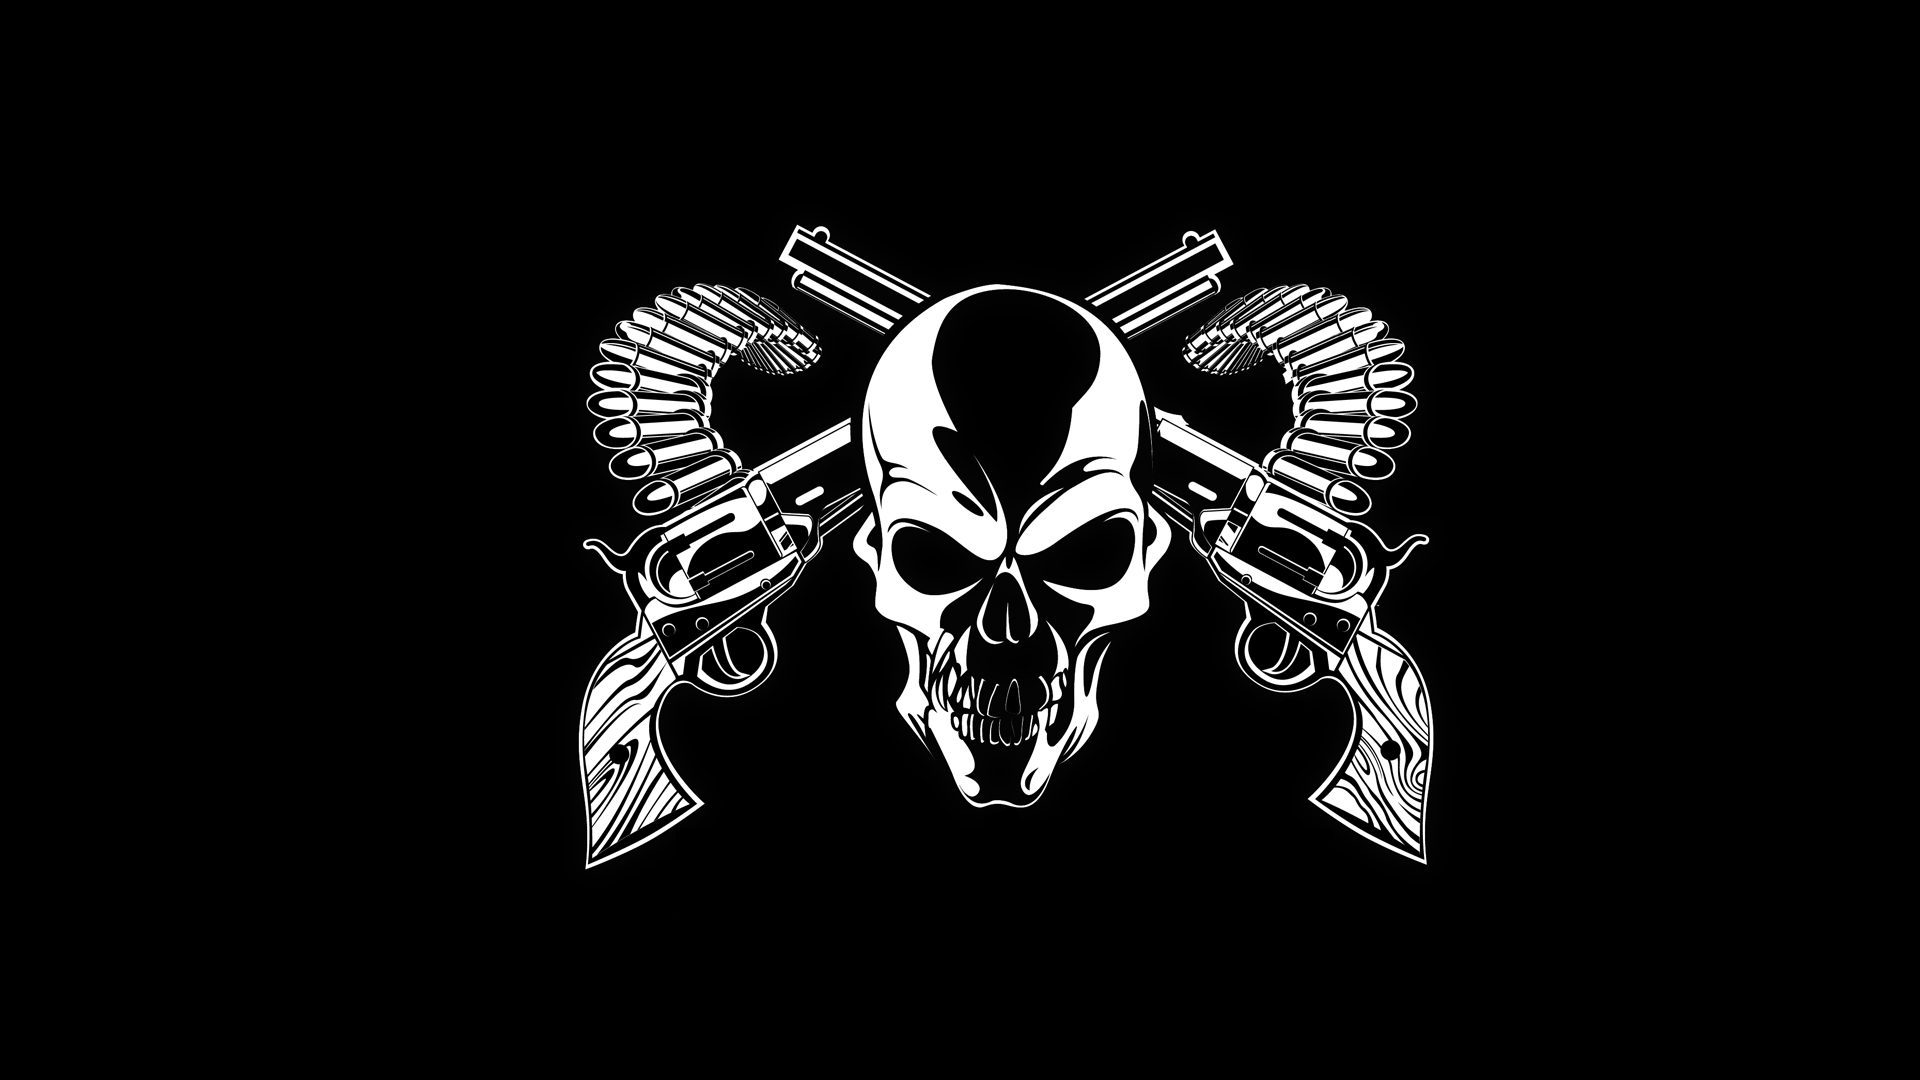 skull wallpapers gun. ««